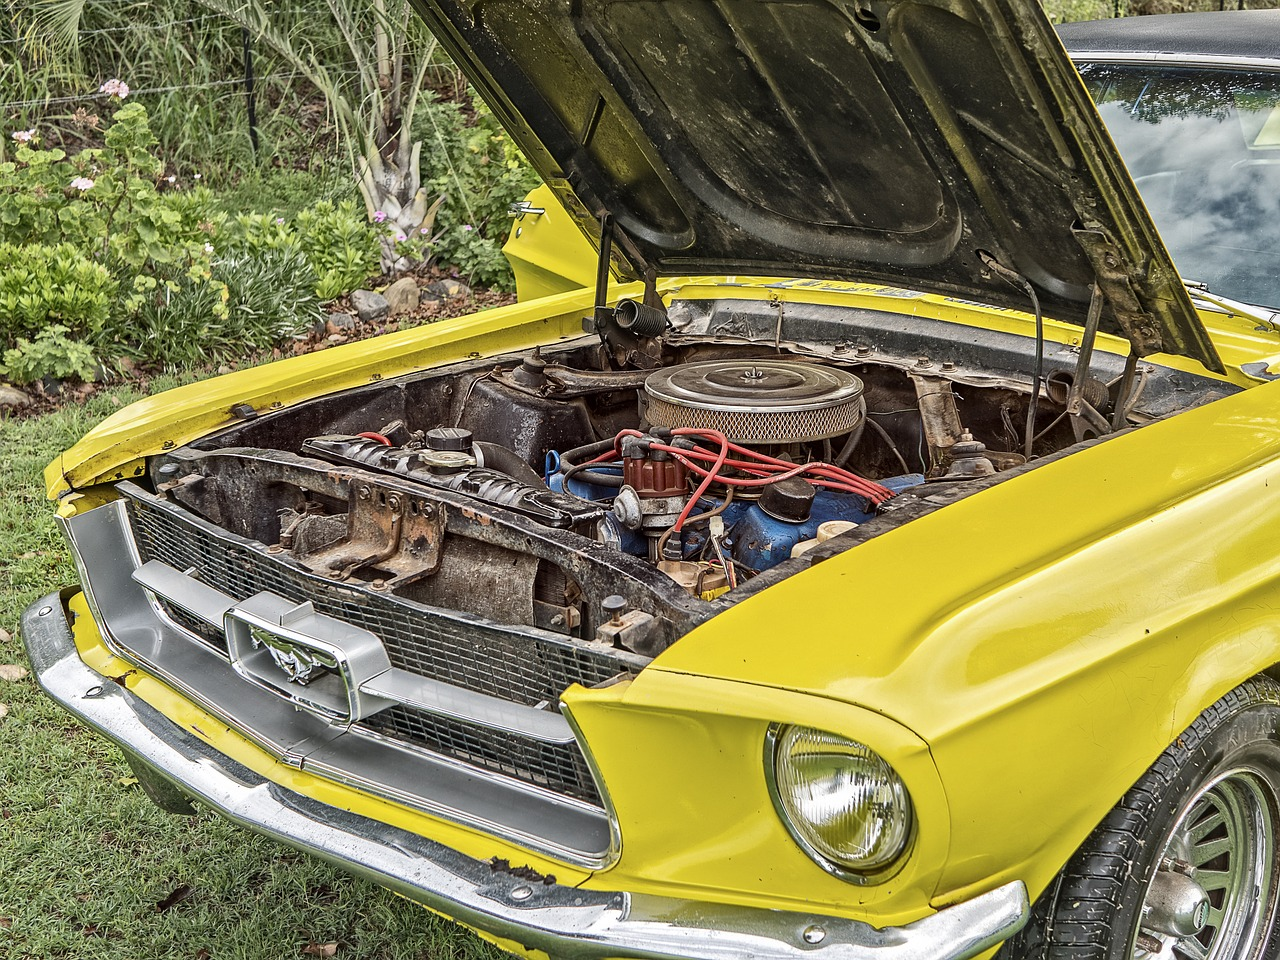 Classic Car Storage and Maintenance Tips